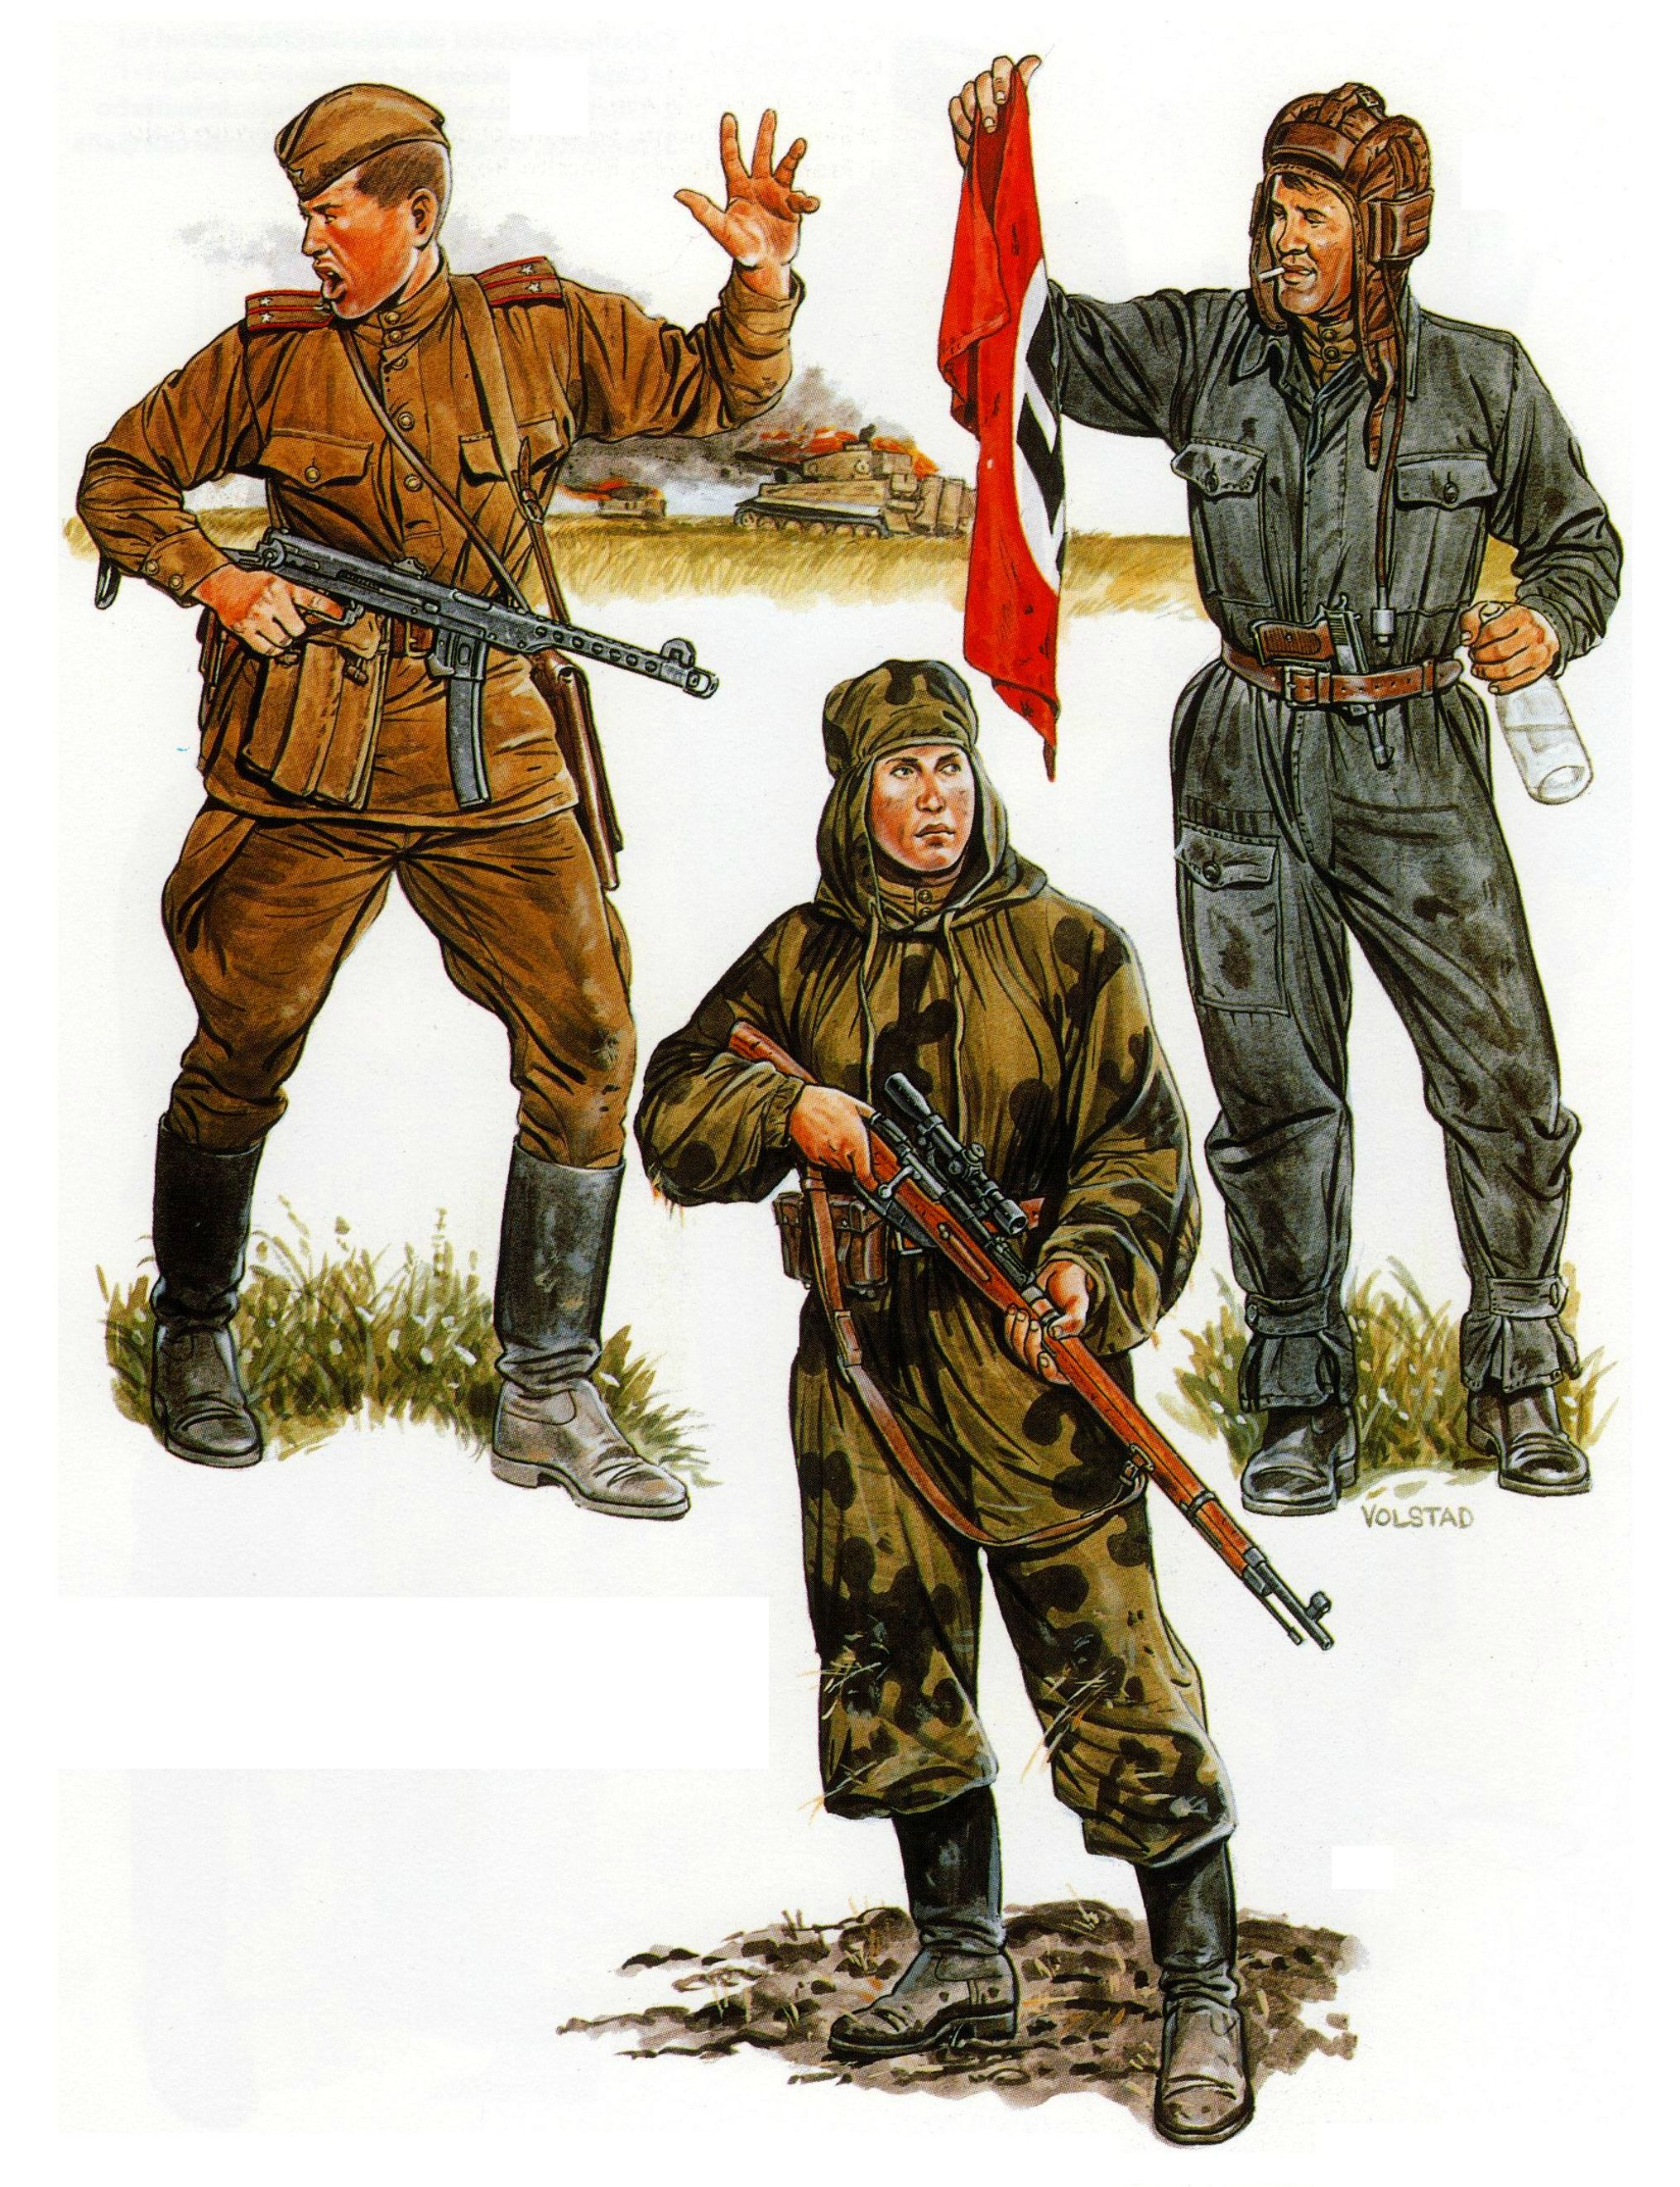 Drawn snipers red army 1943: Kursk and sniper sniper